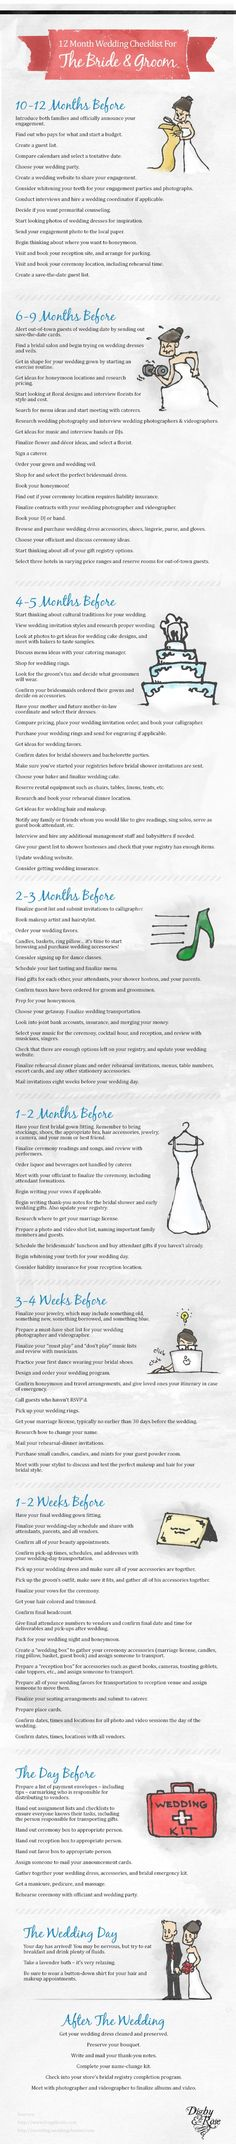 I cant believe I'm down to 5 months!!! 12 Month Wedding Checklist For The Bride and Groom